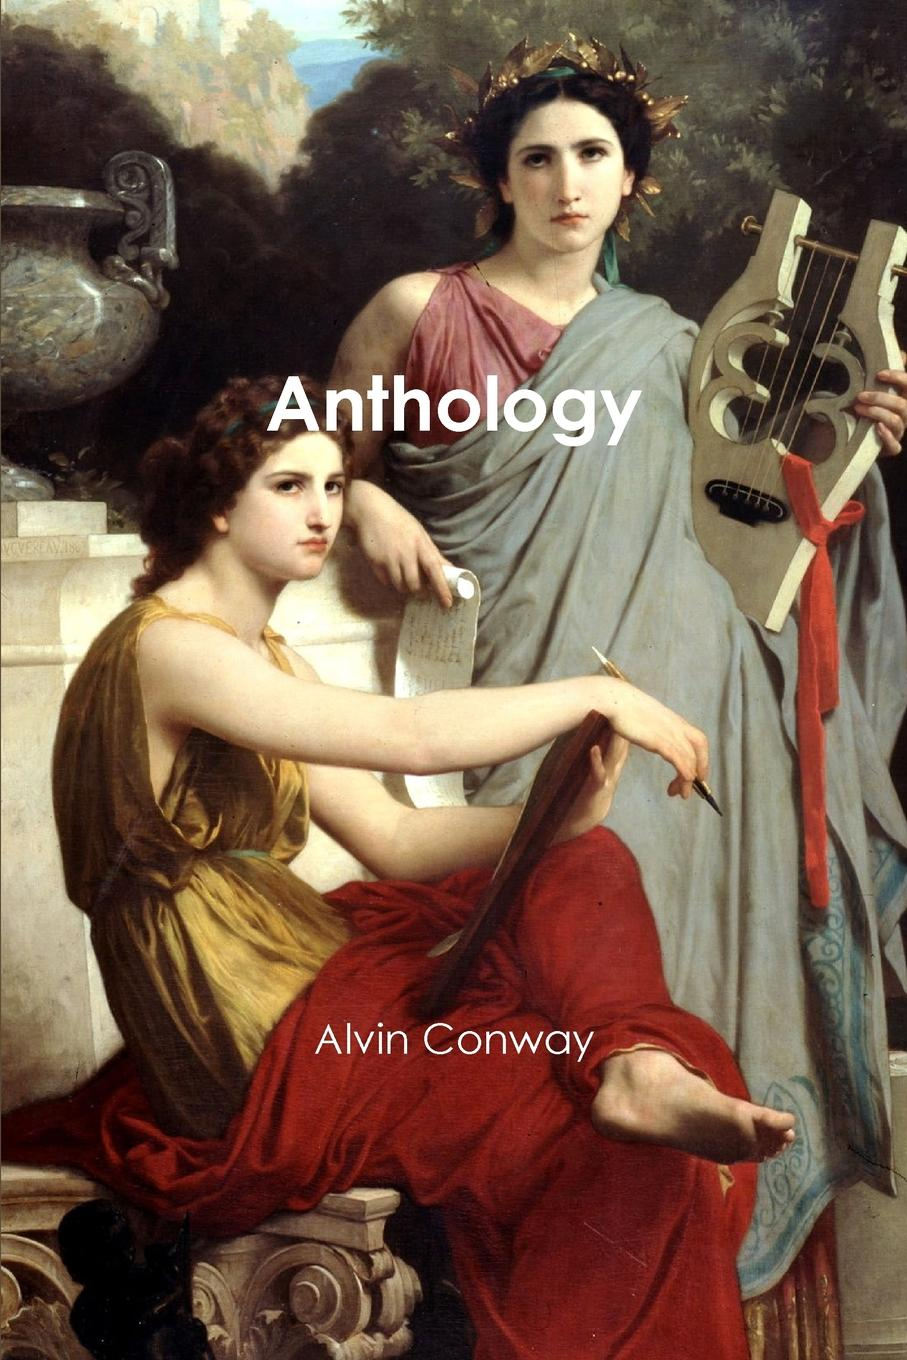 Alvin Conway Anthology h conway called back collection of british authors vol 2243 in one volume